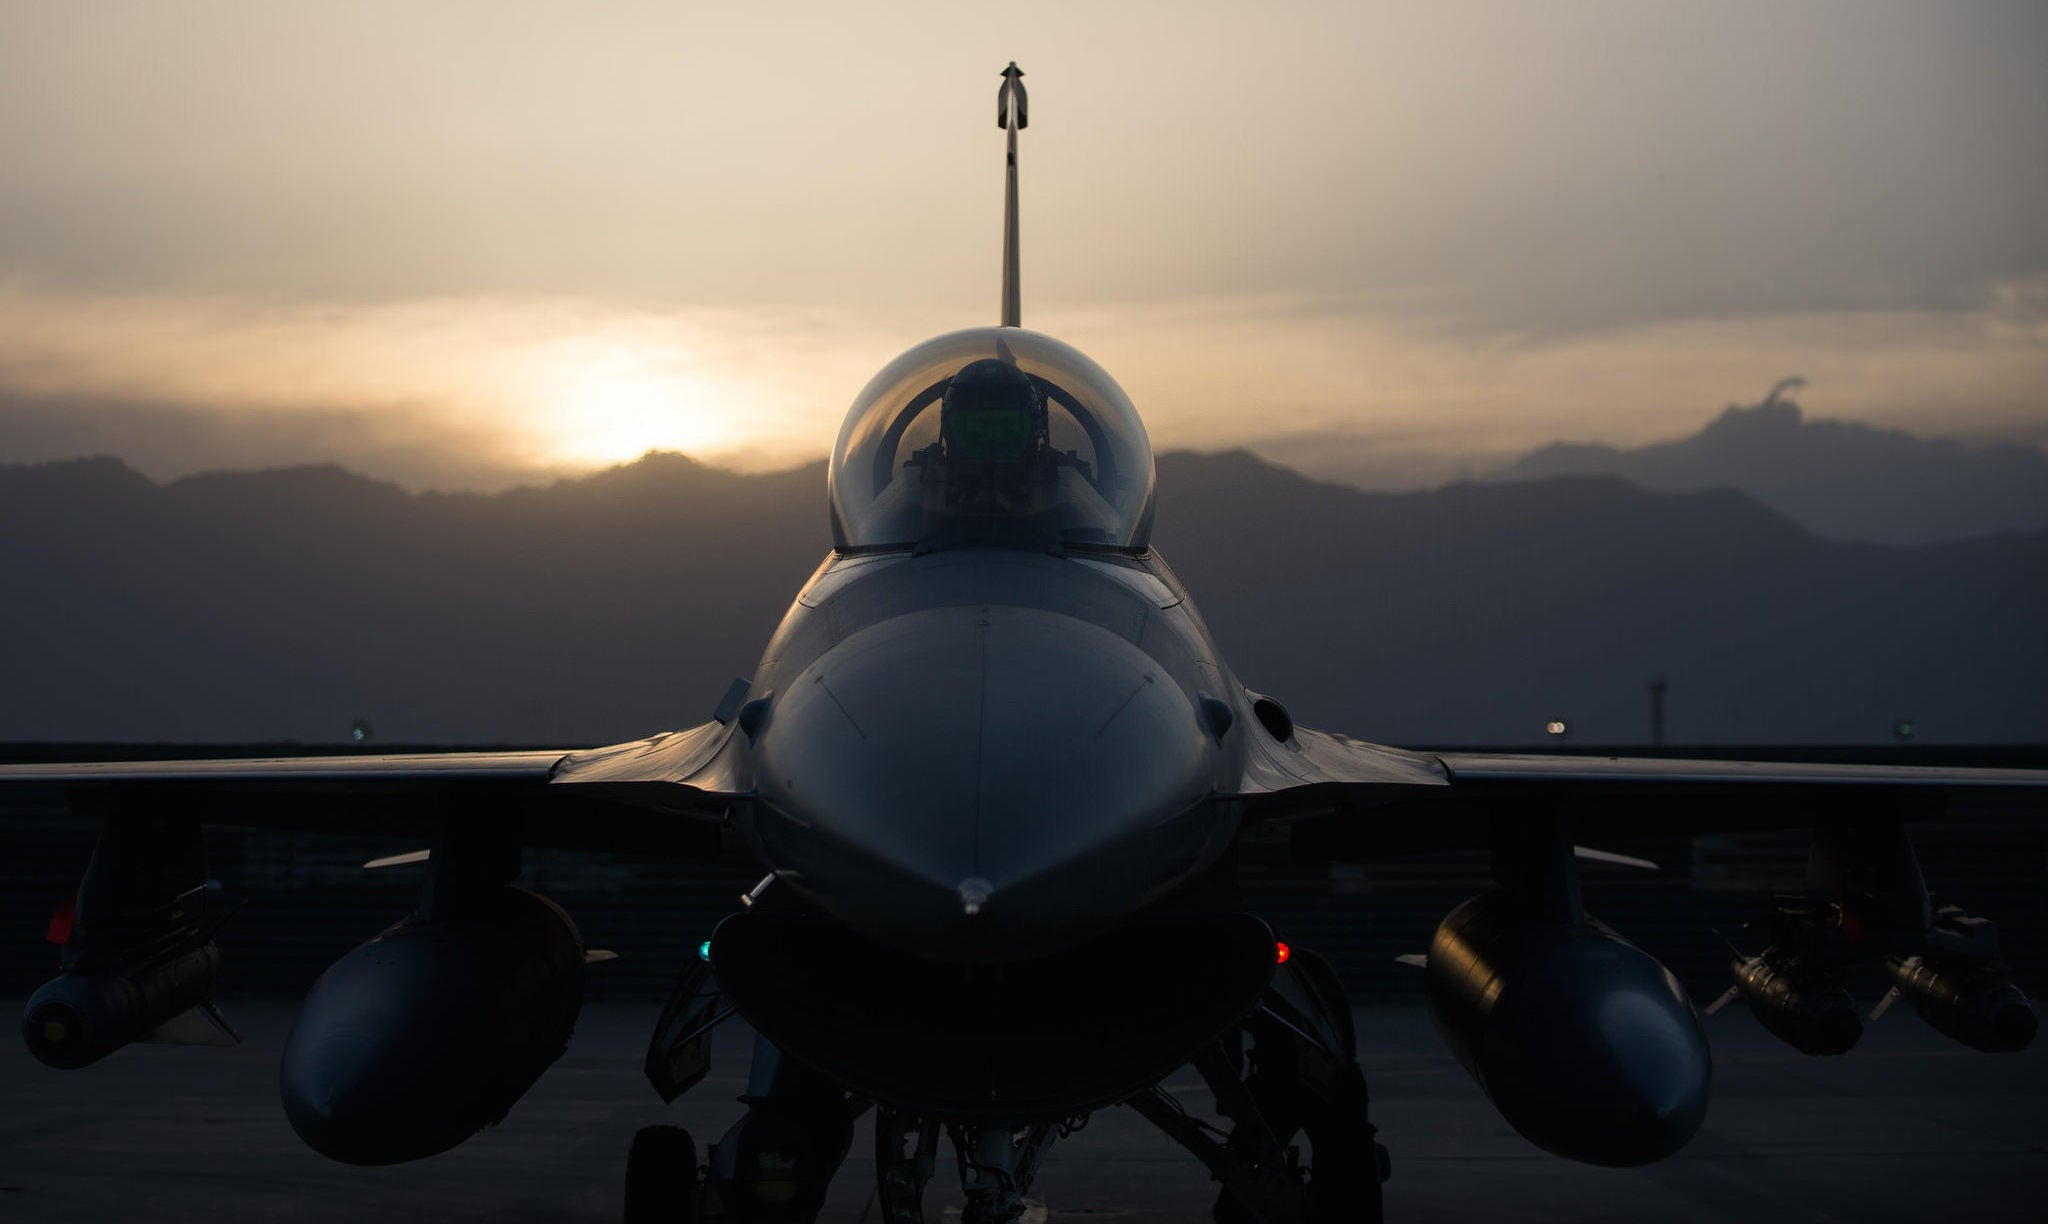 Intimidating head on view of an F-16